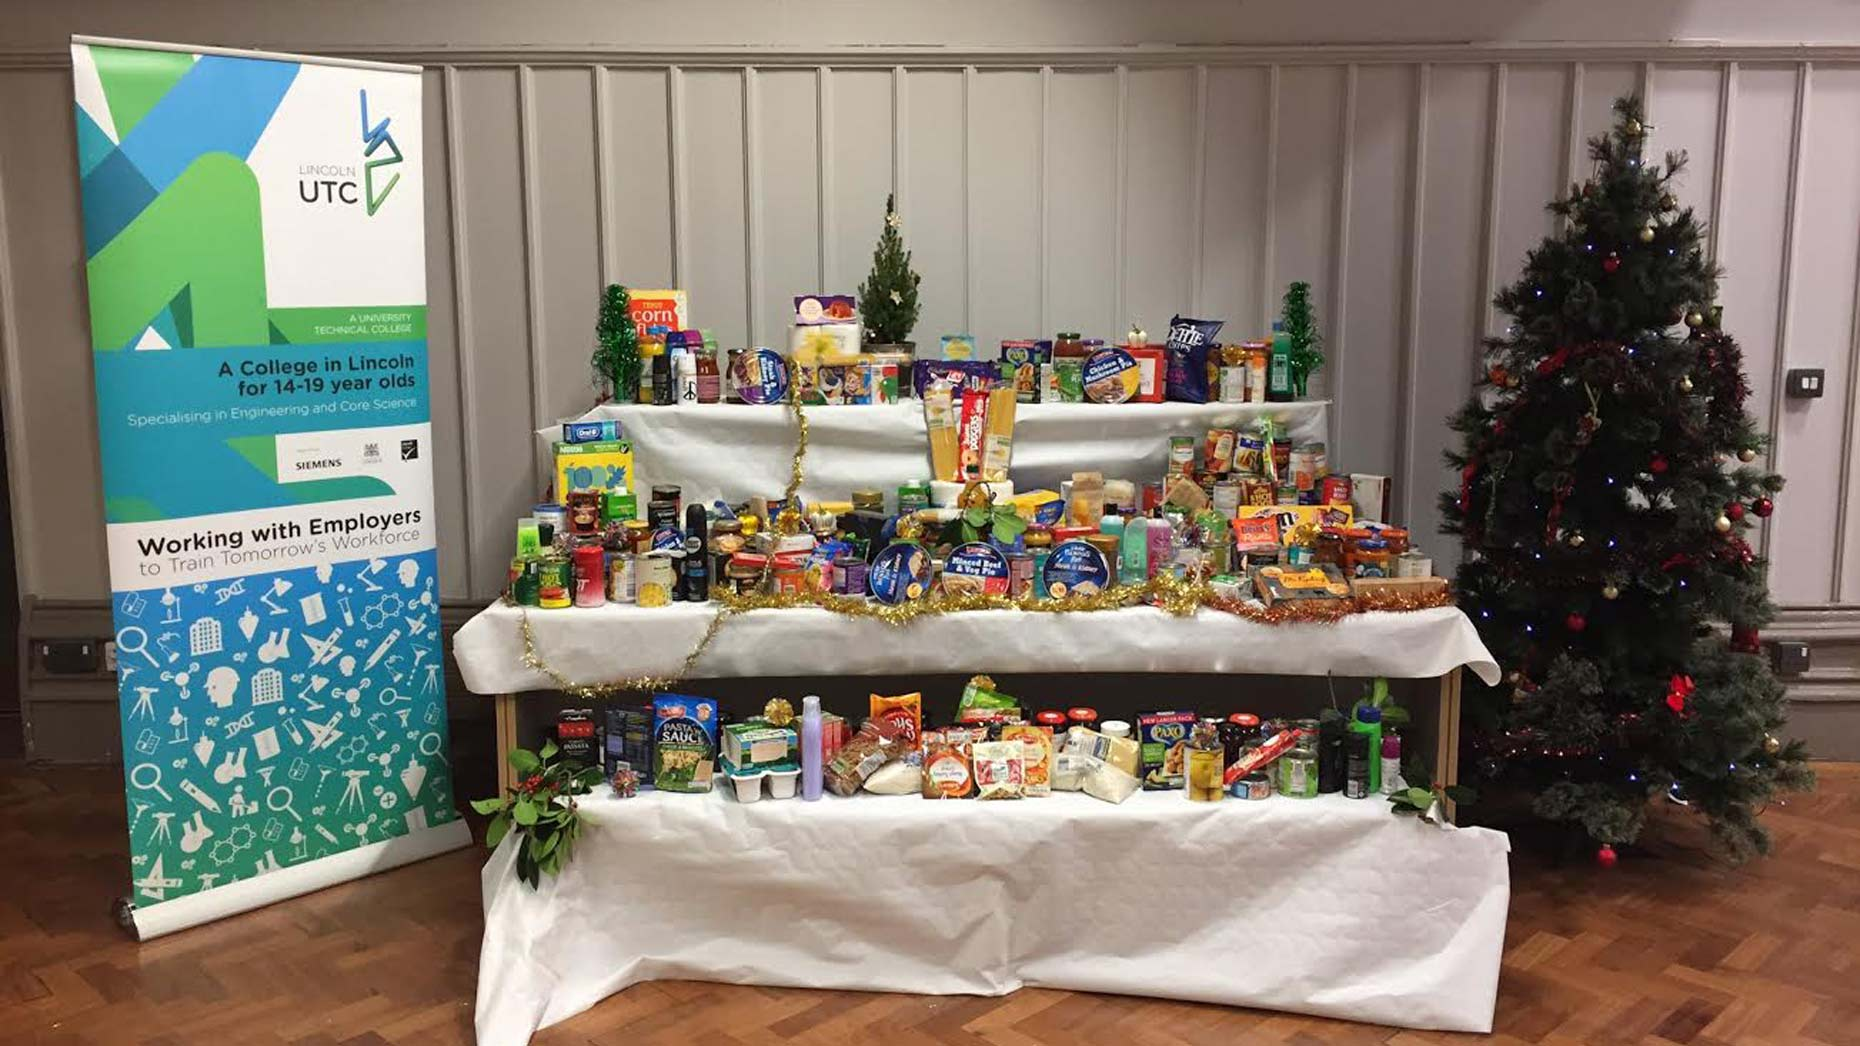 Over 150 items have been donated